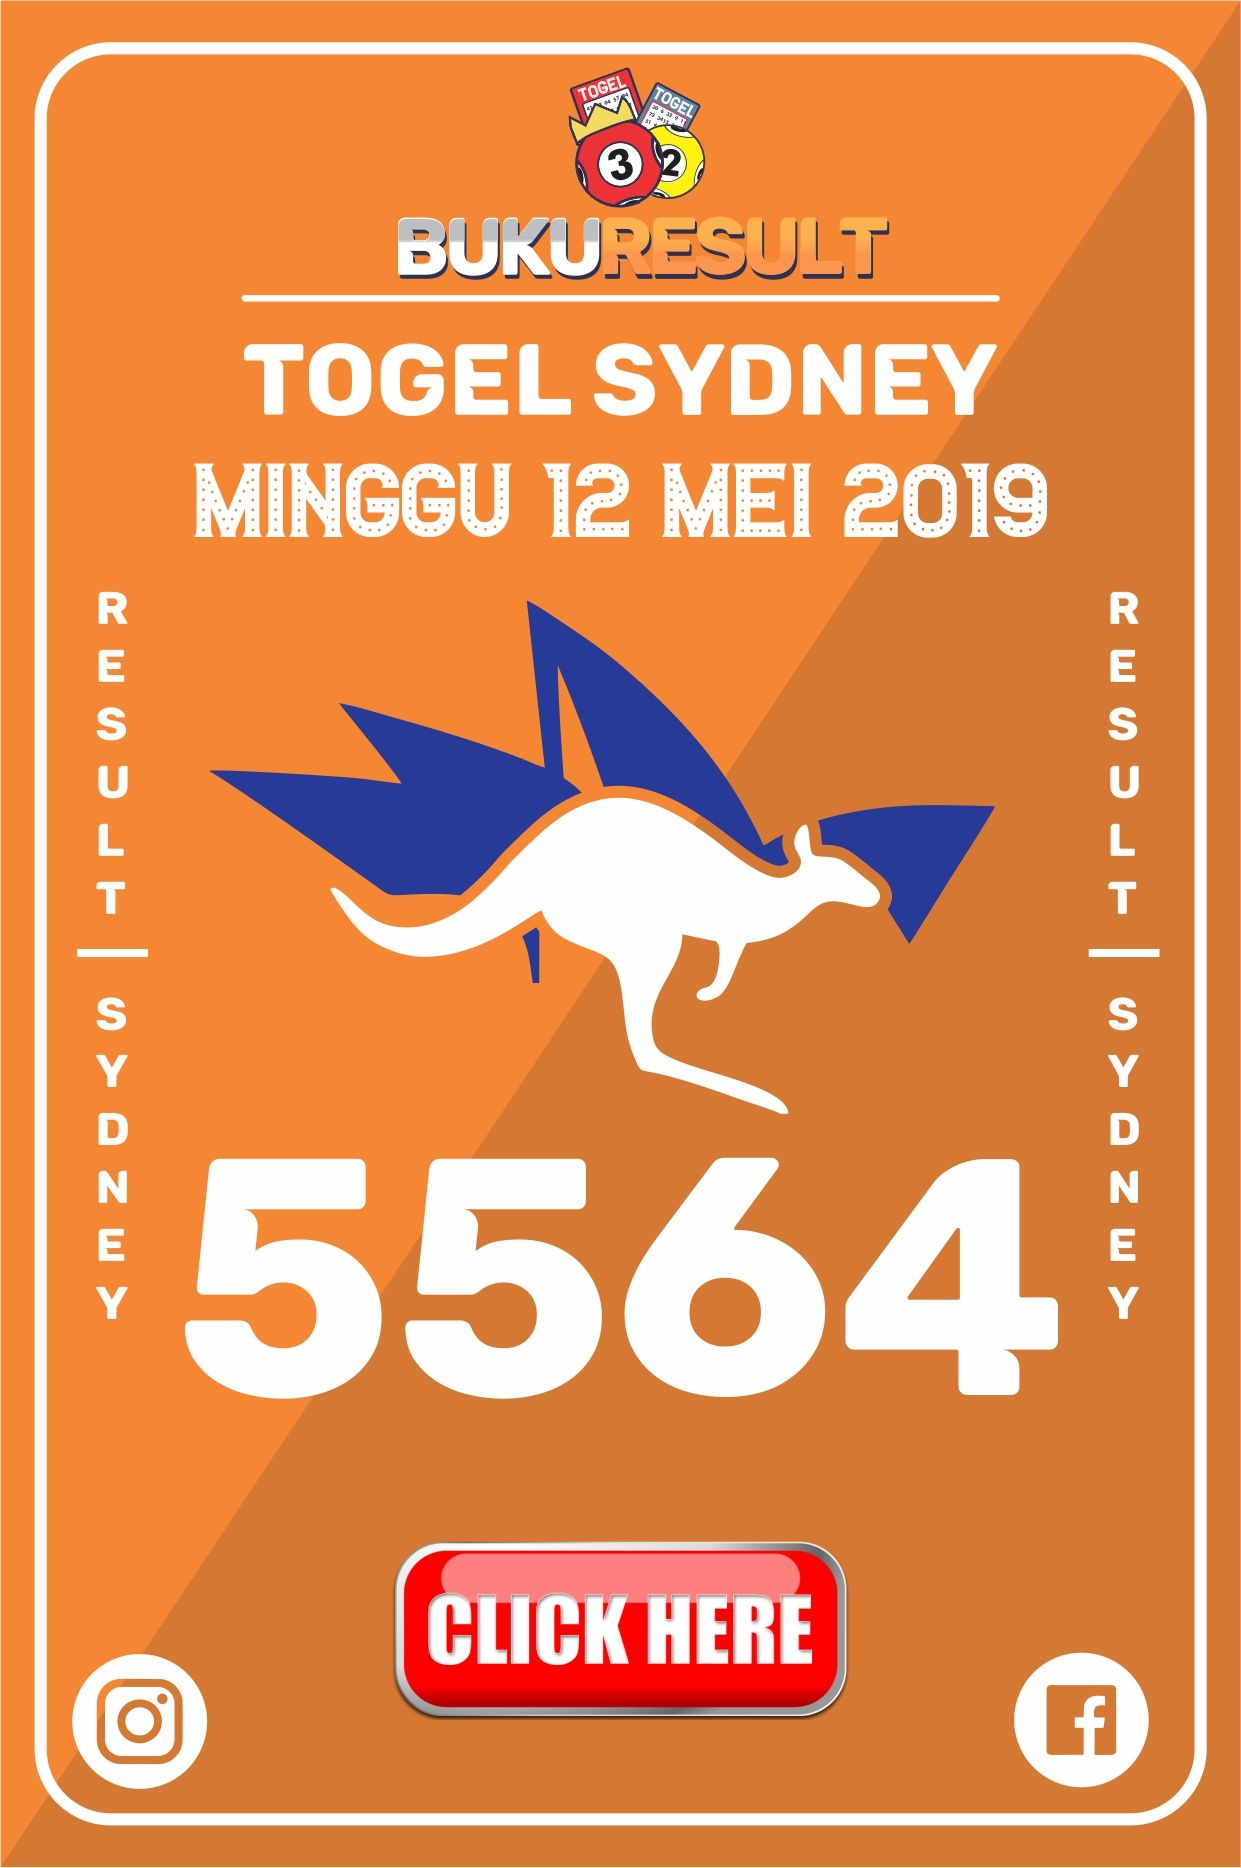 RESULT SYDNEY POOLS, LIVE DRAW SIDNEY, TOGEL SIDNEY #BUKURESULT